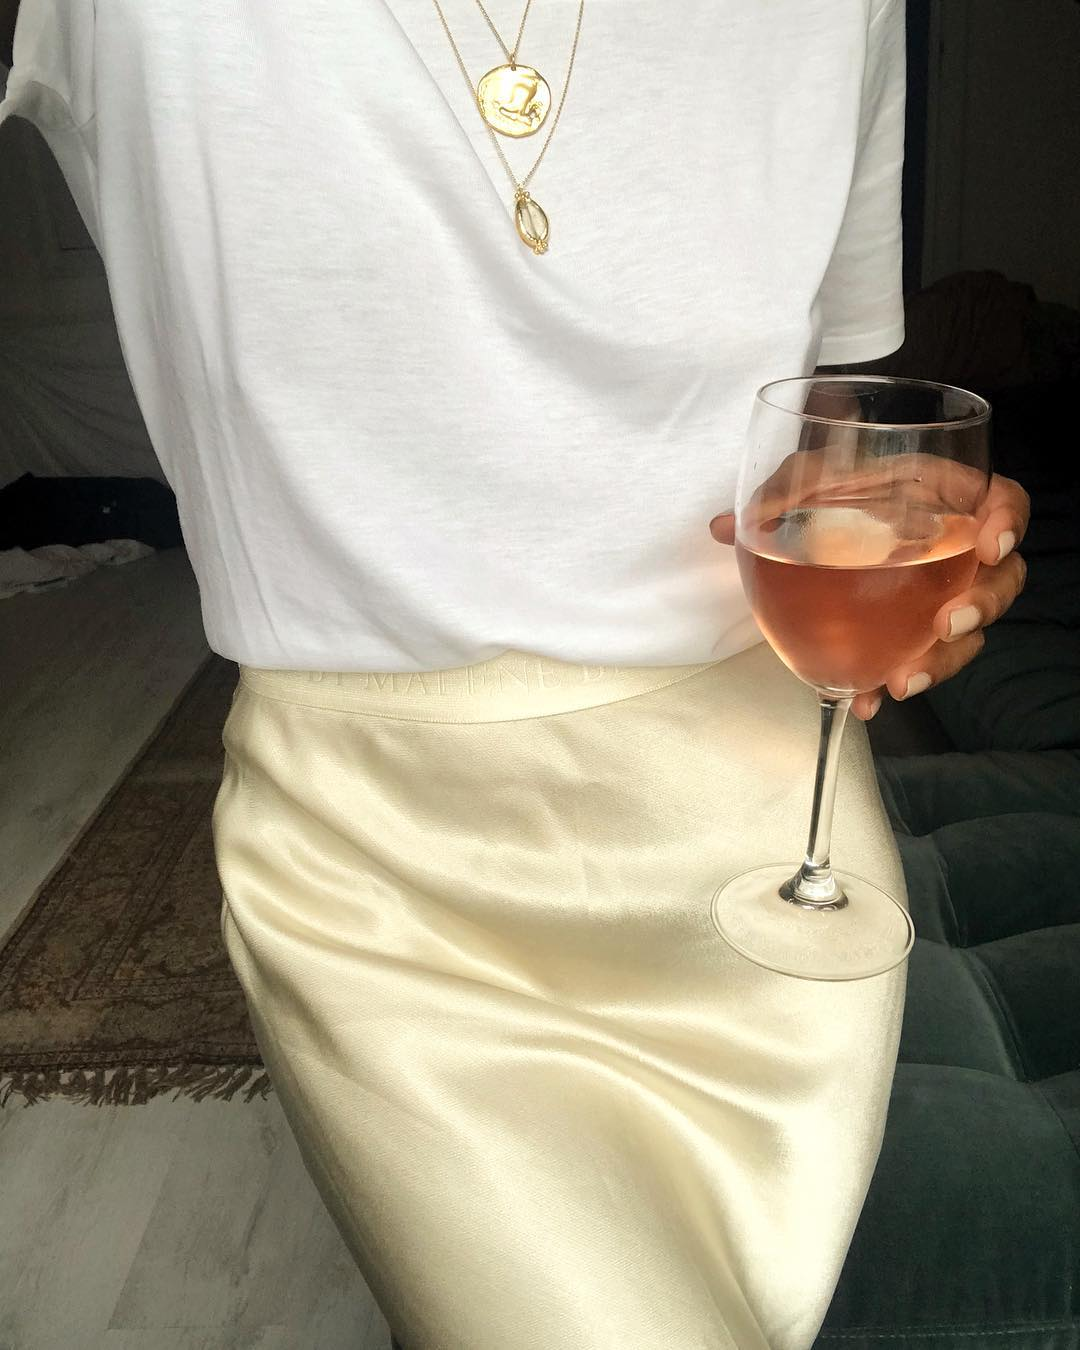 Stylish Outfit for Enjoying Your Summer Rosé — White T-Shirt and Satin Skirt